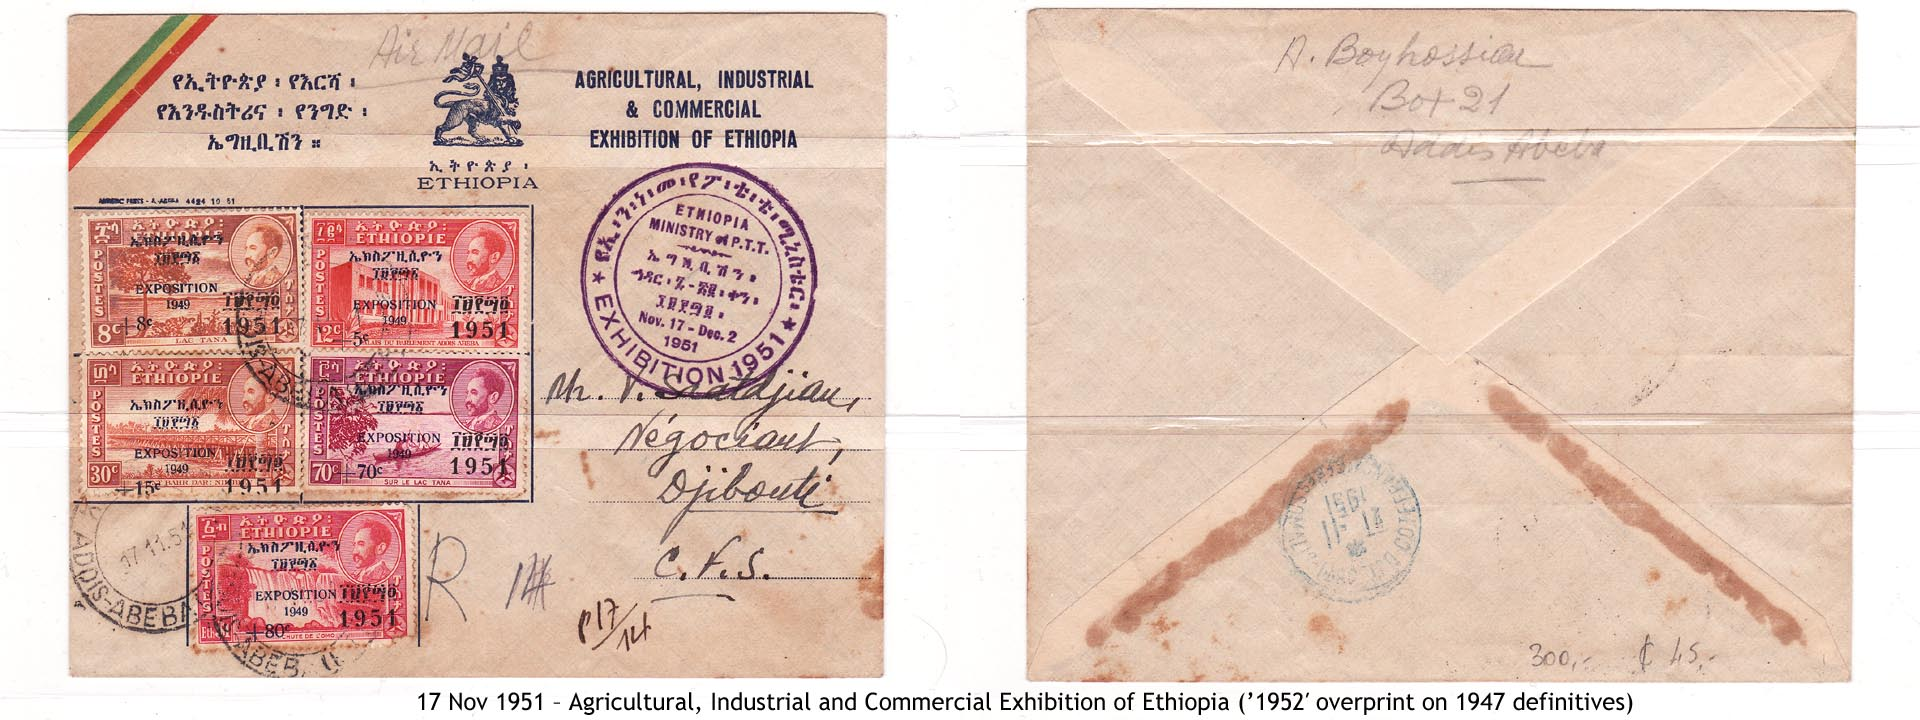 19511117 – Agricultural, Industrial and Commercial Exhibition of Ethiopia (1952 overprint on 1947 definitives)